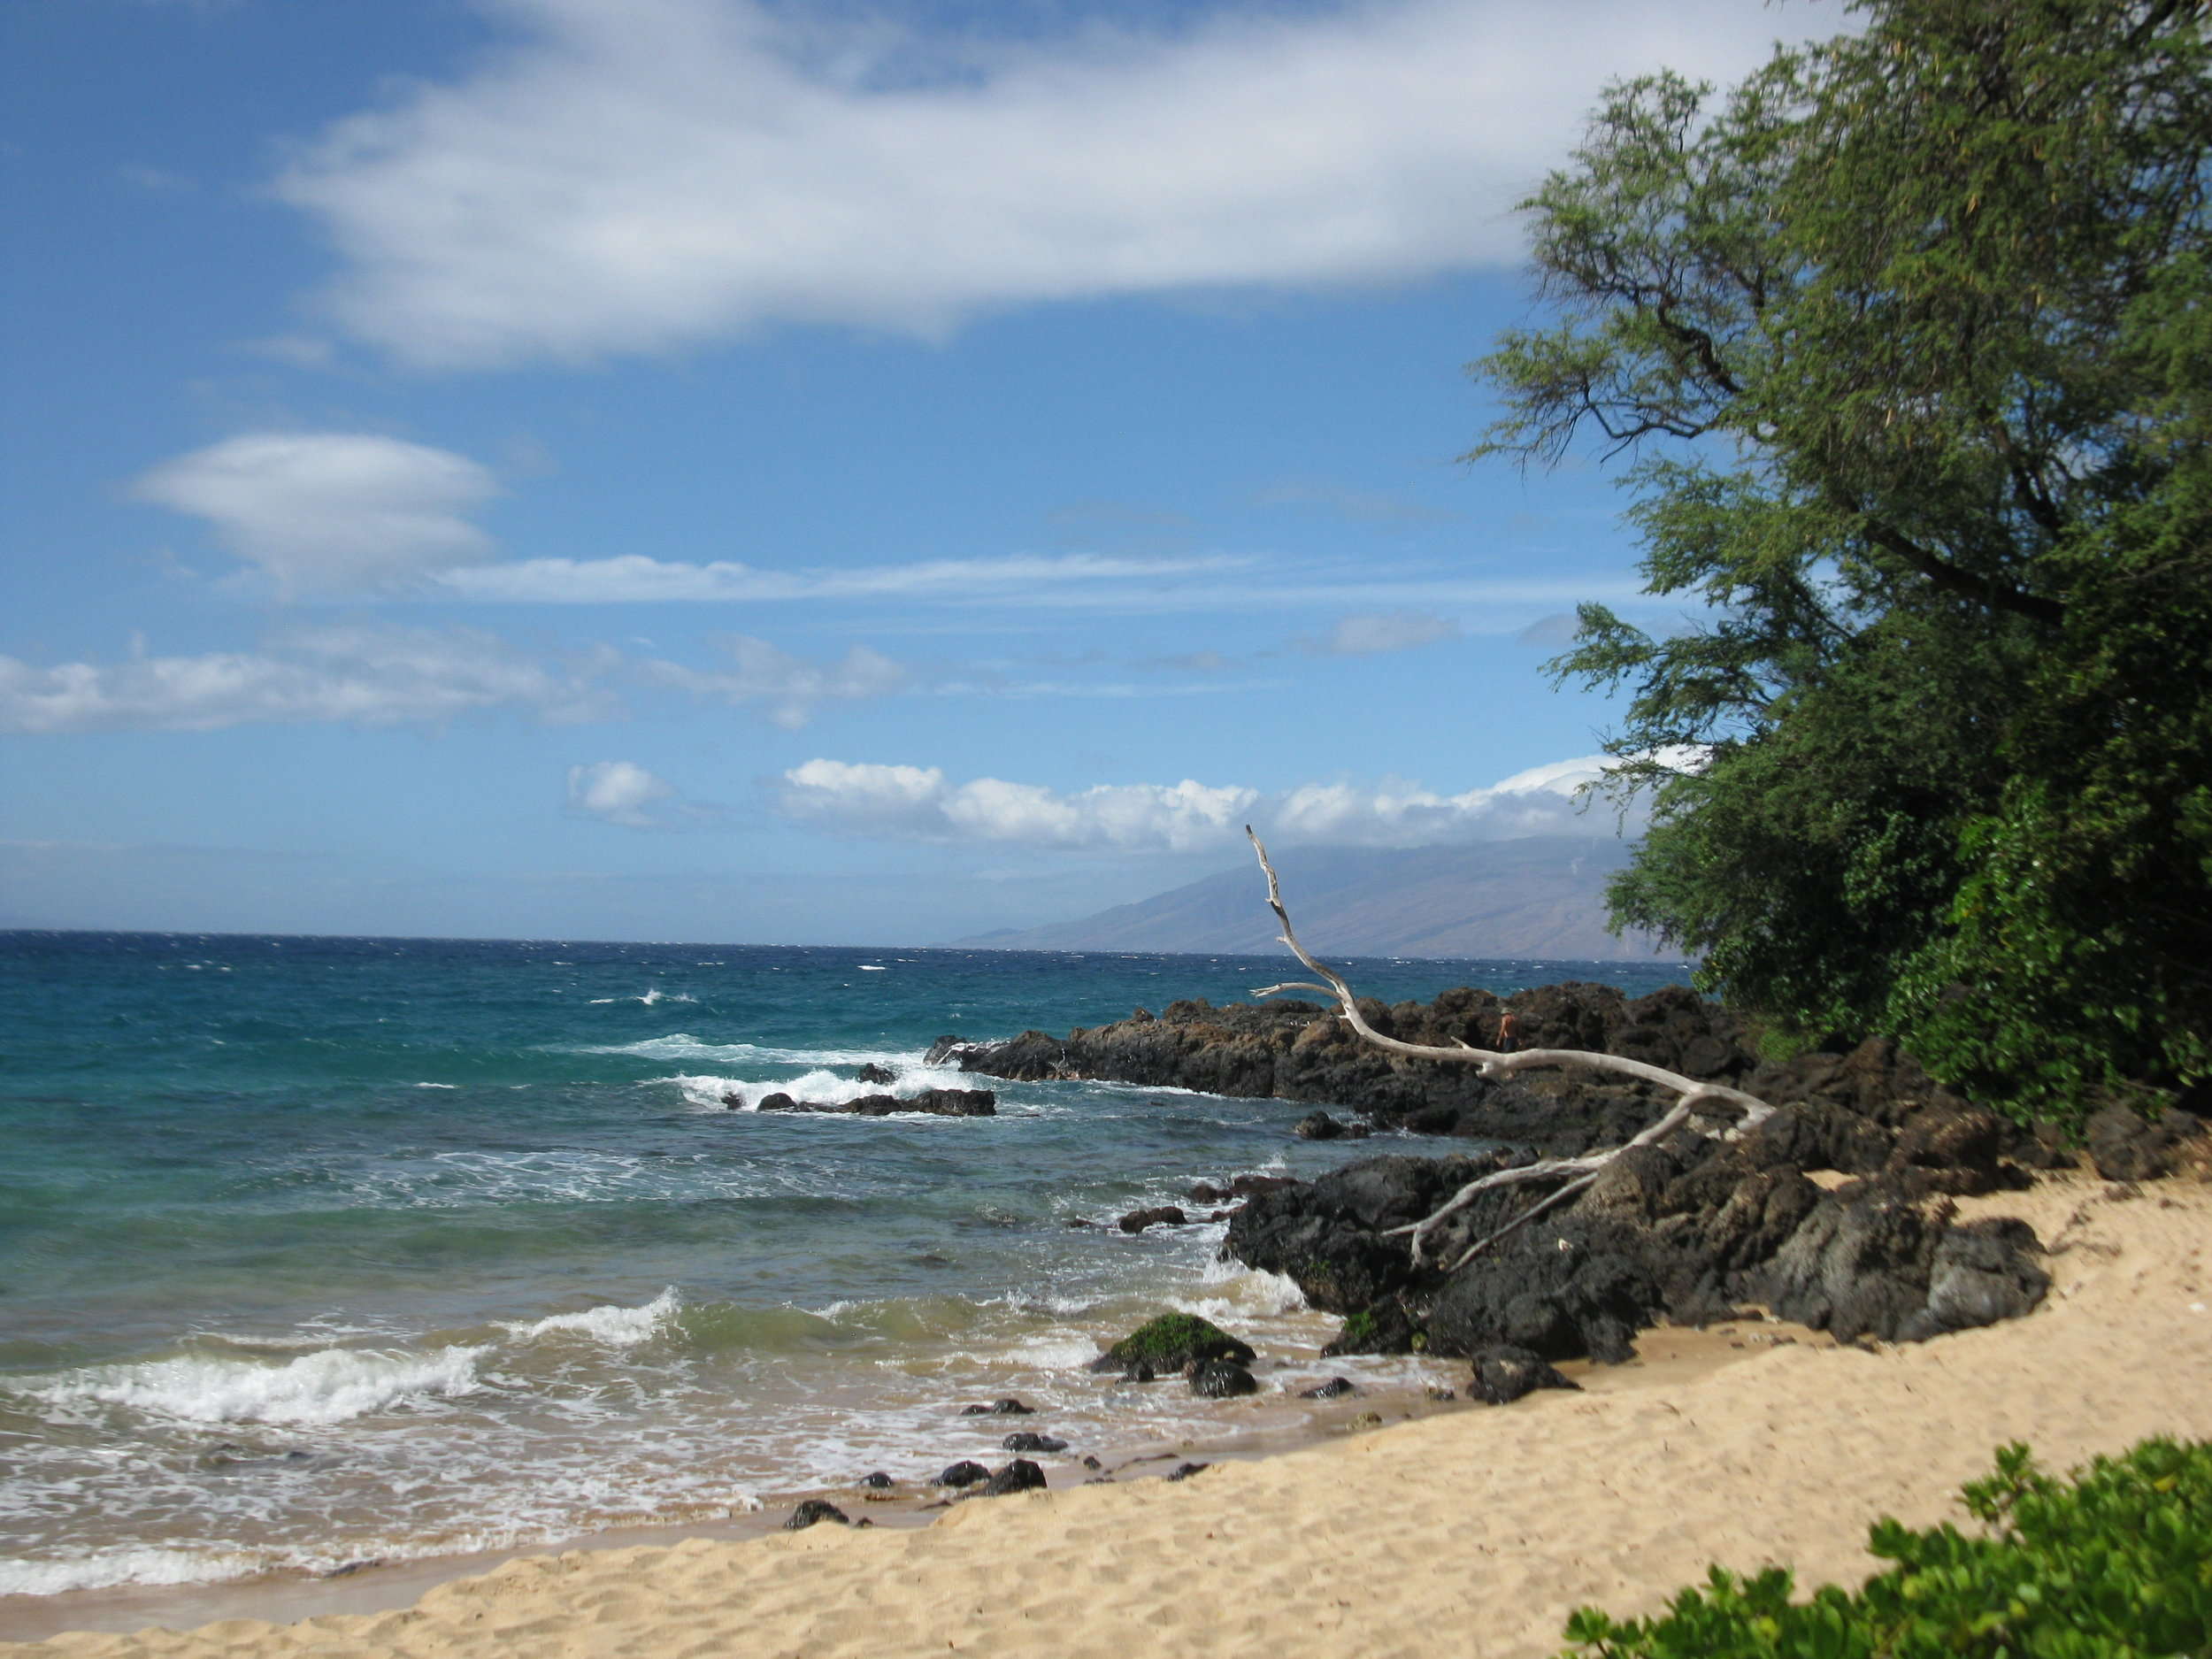 Maui...the beautiful Island where it all came together for me!